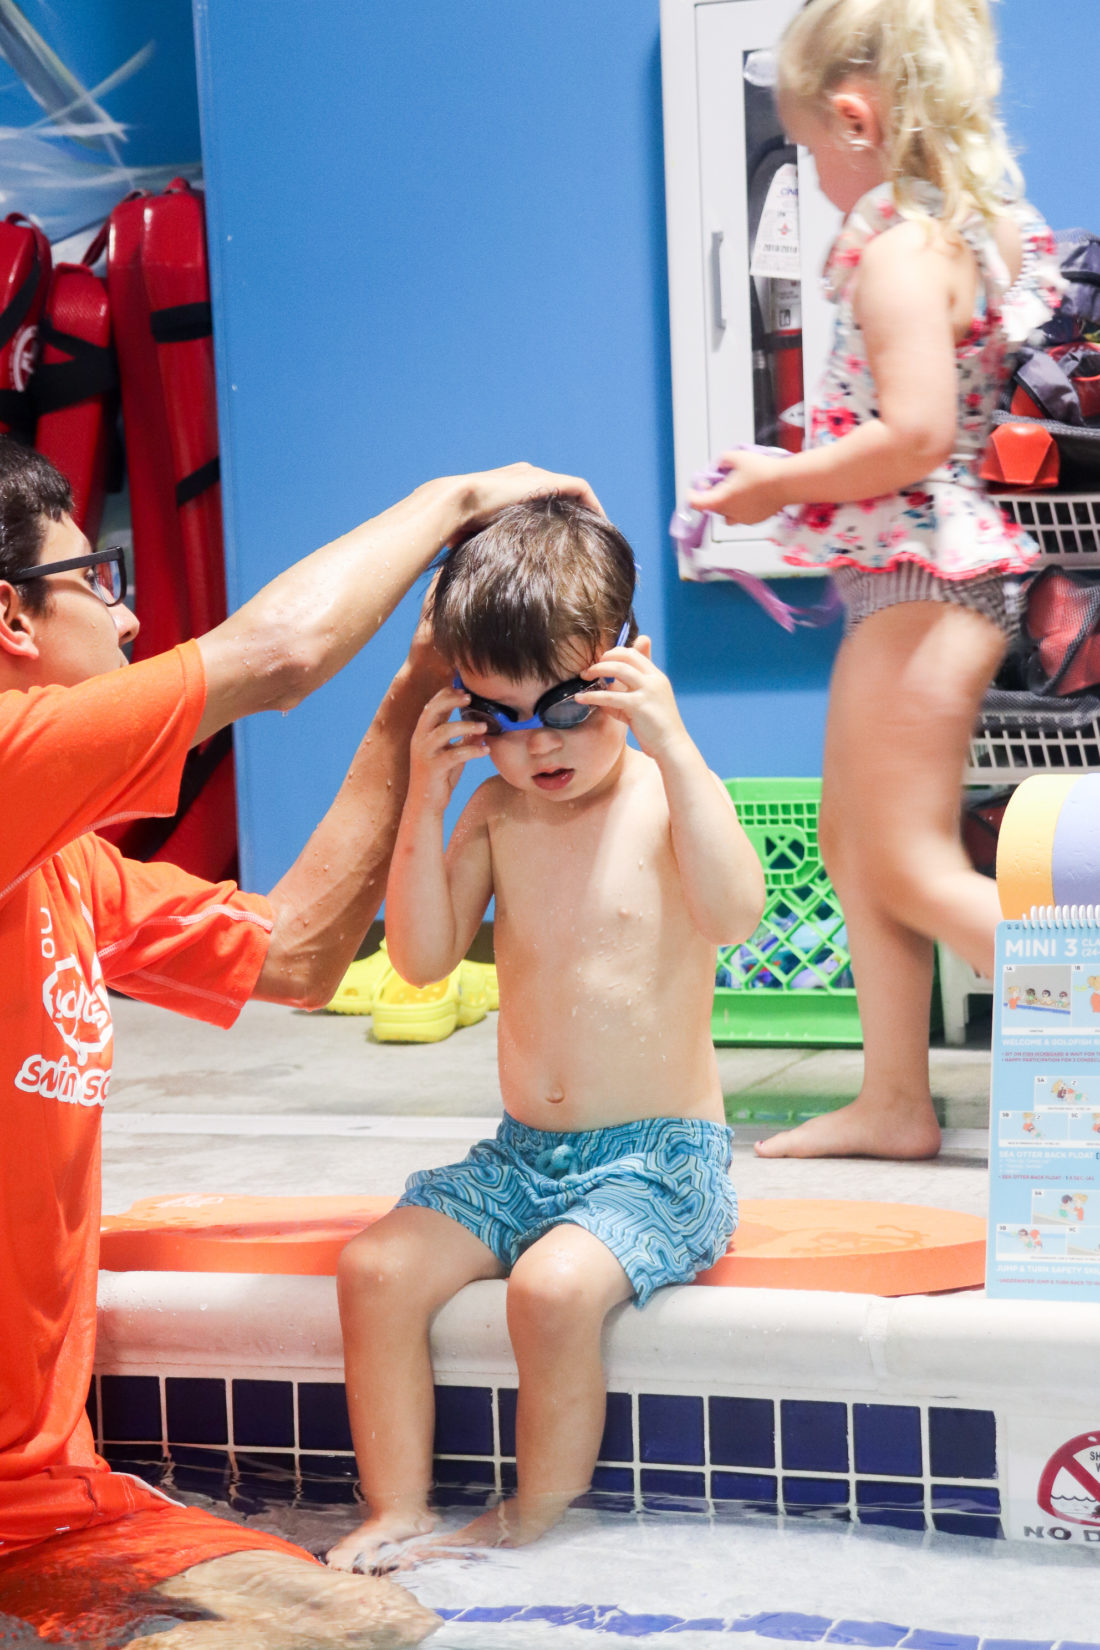 Kids water safety is a priority for the Martino family which is why they enrolled their kids in swim lessons